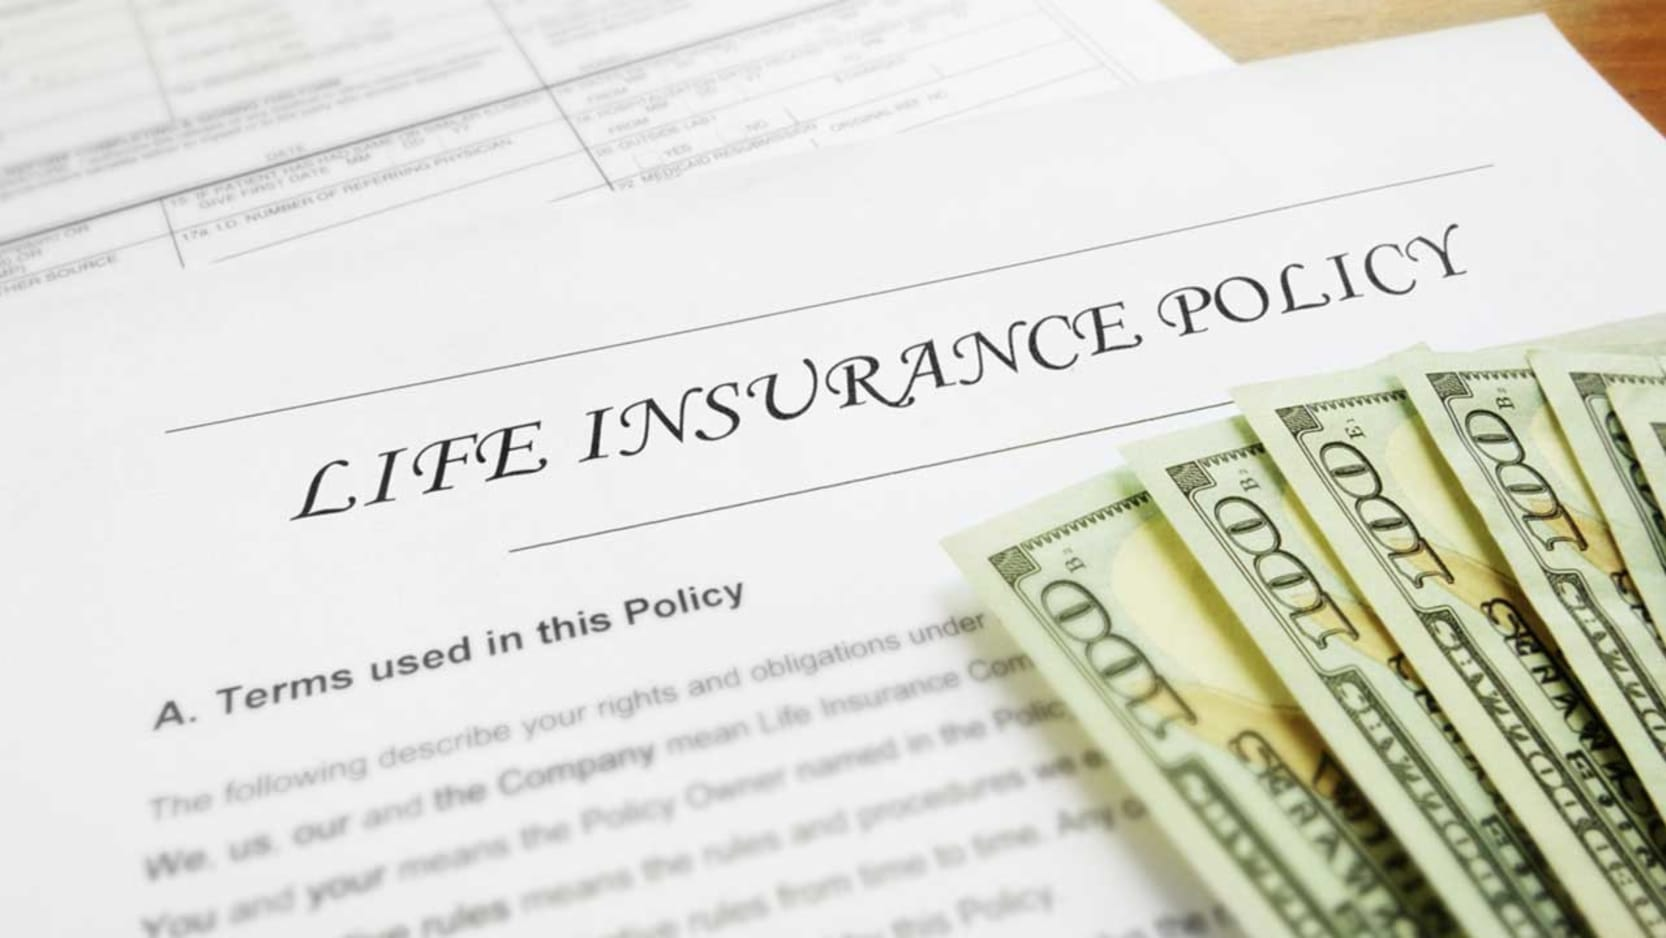 A life insurance policy on a desk with $100 bills lying on top.